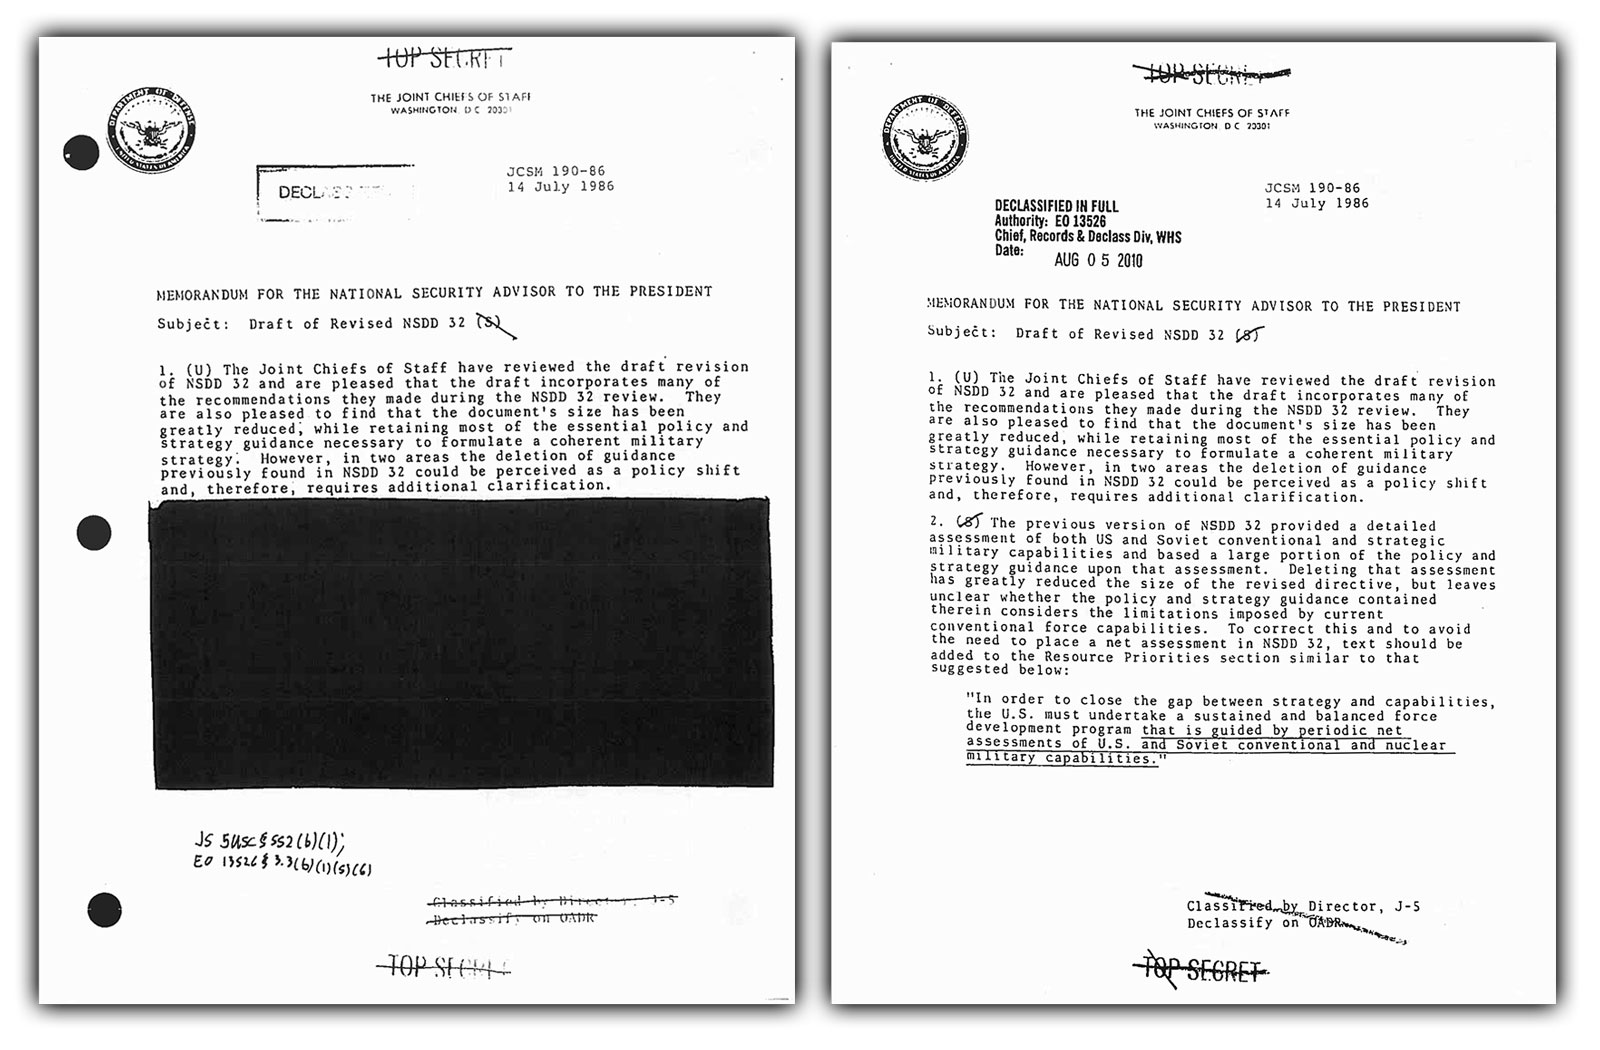 Redactions: The Declassified File | National Security Archive